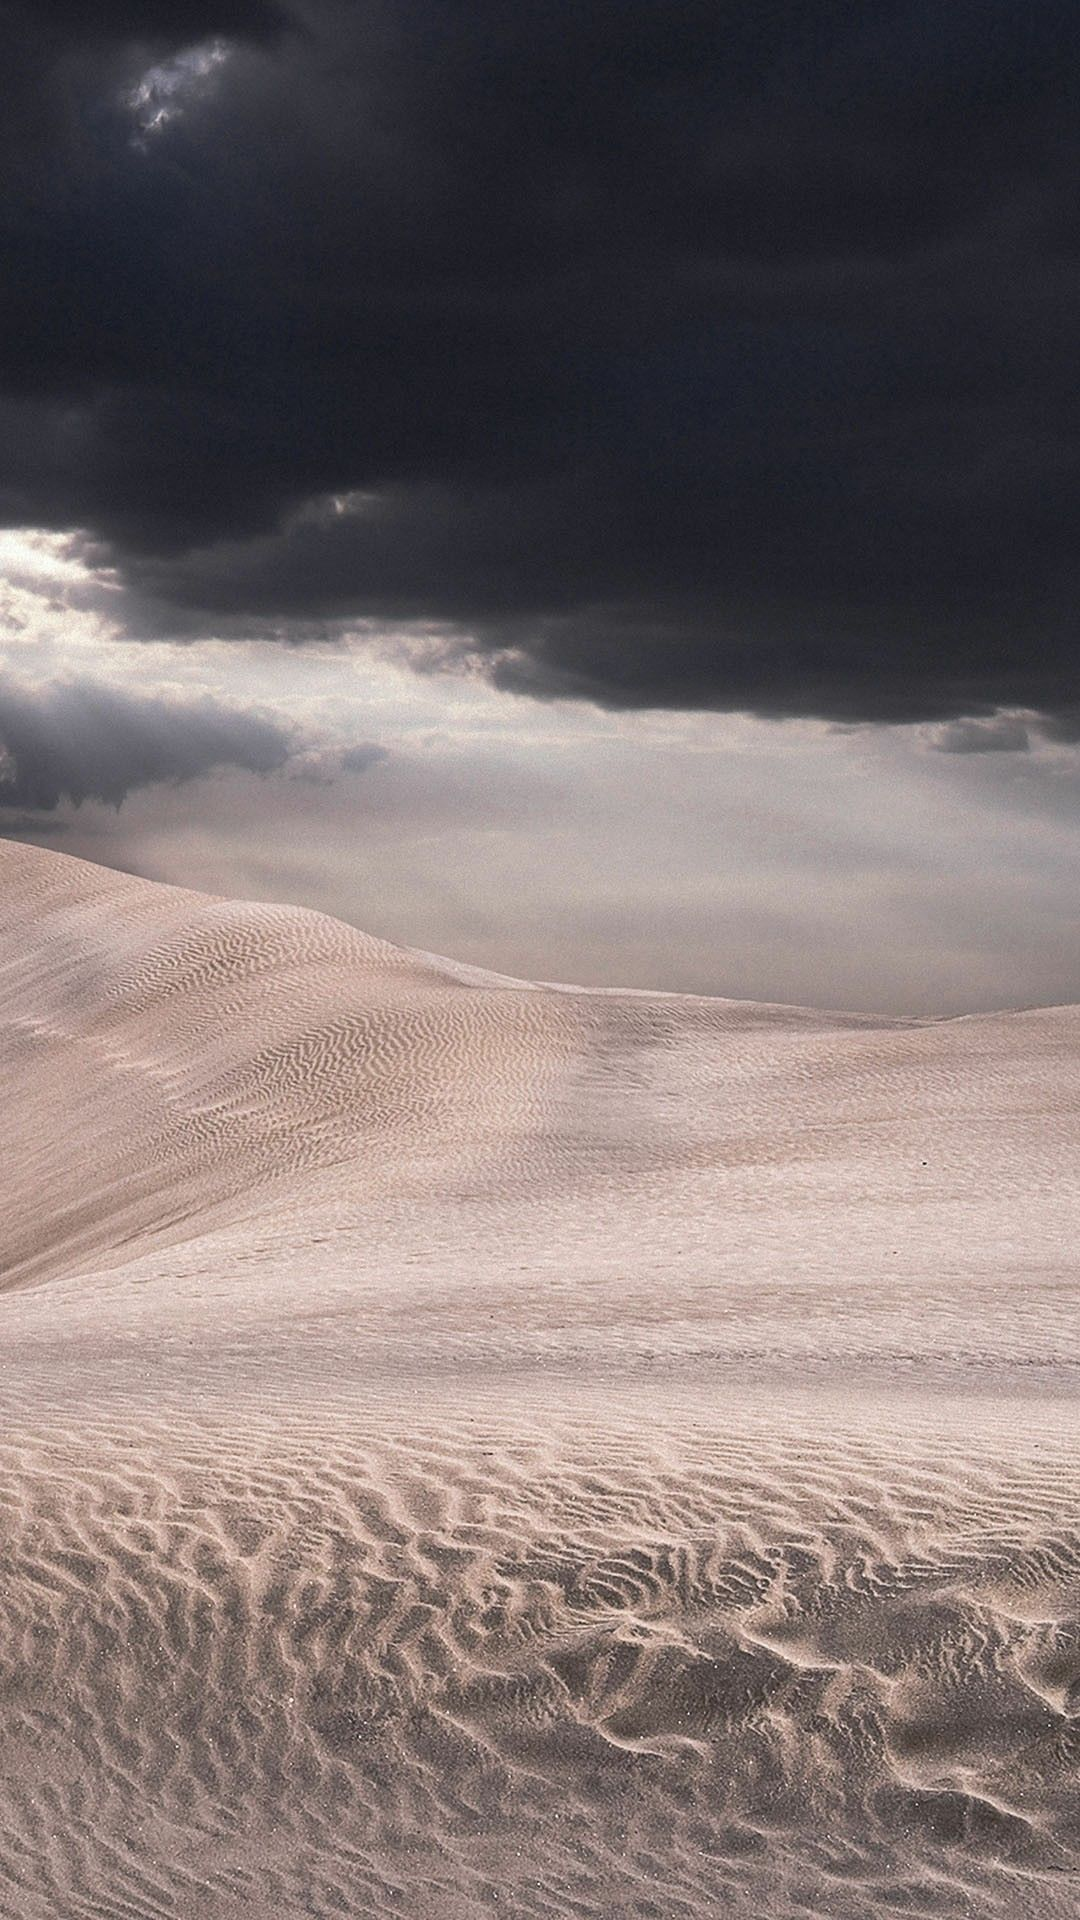 desert sand storm clouds android wallpaper | backgrounds | pinterest